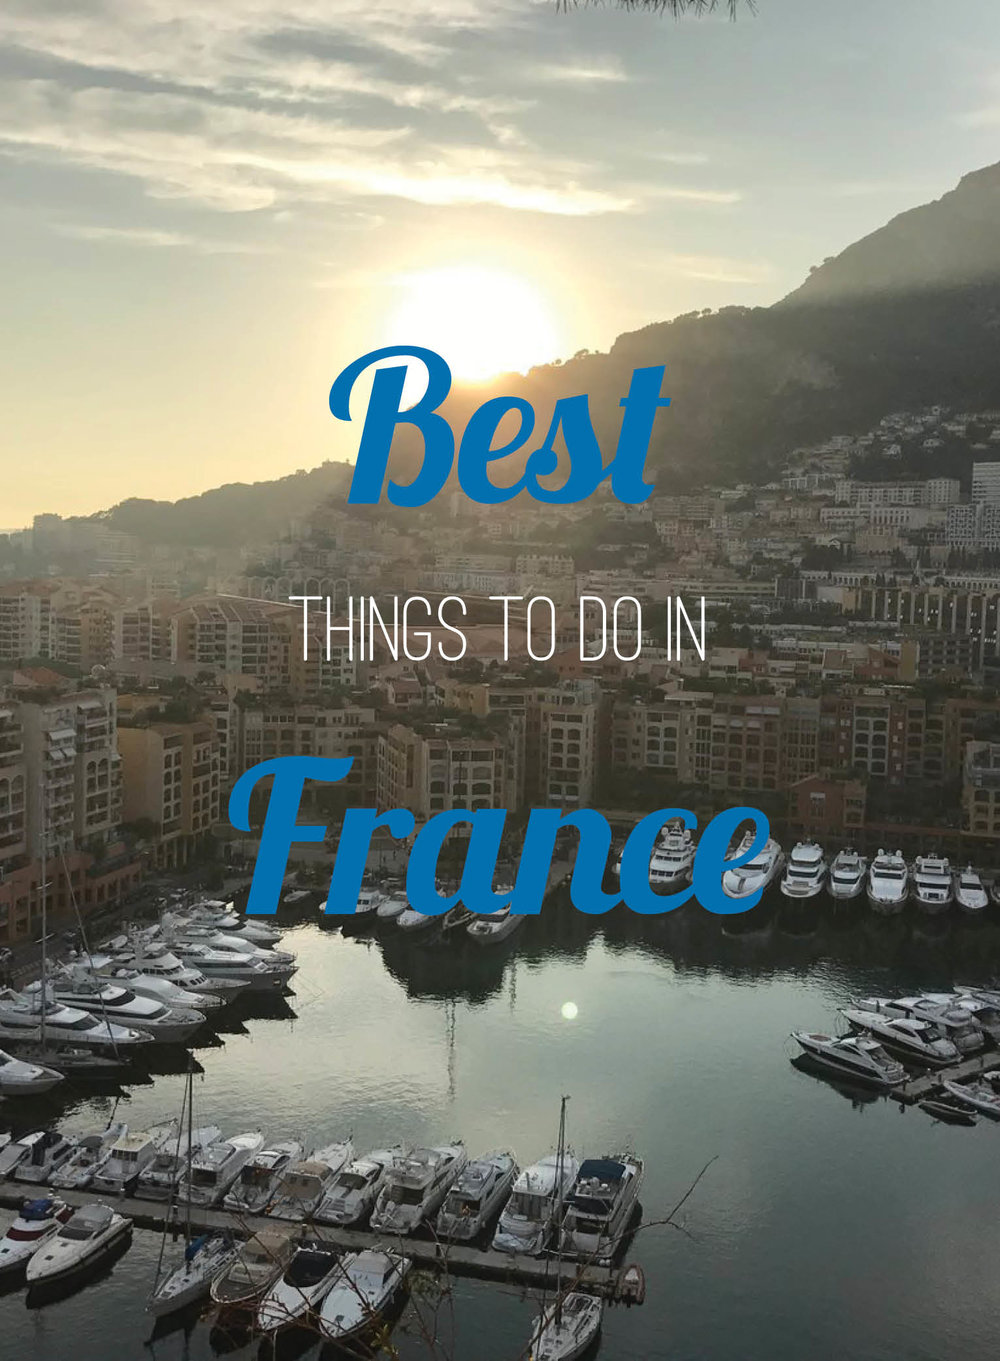 Best Things to do in France.jpg